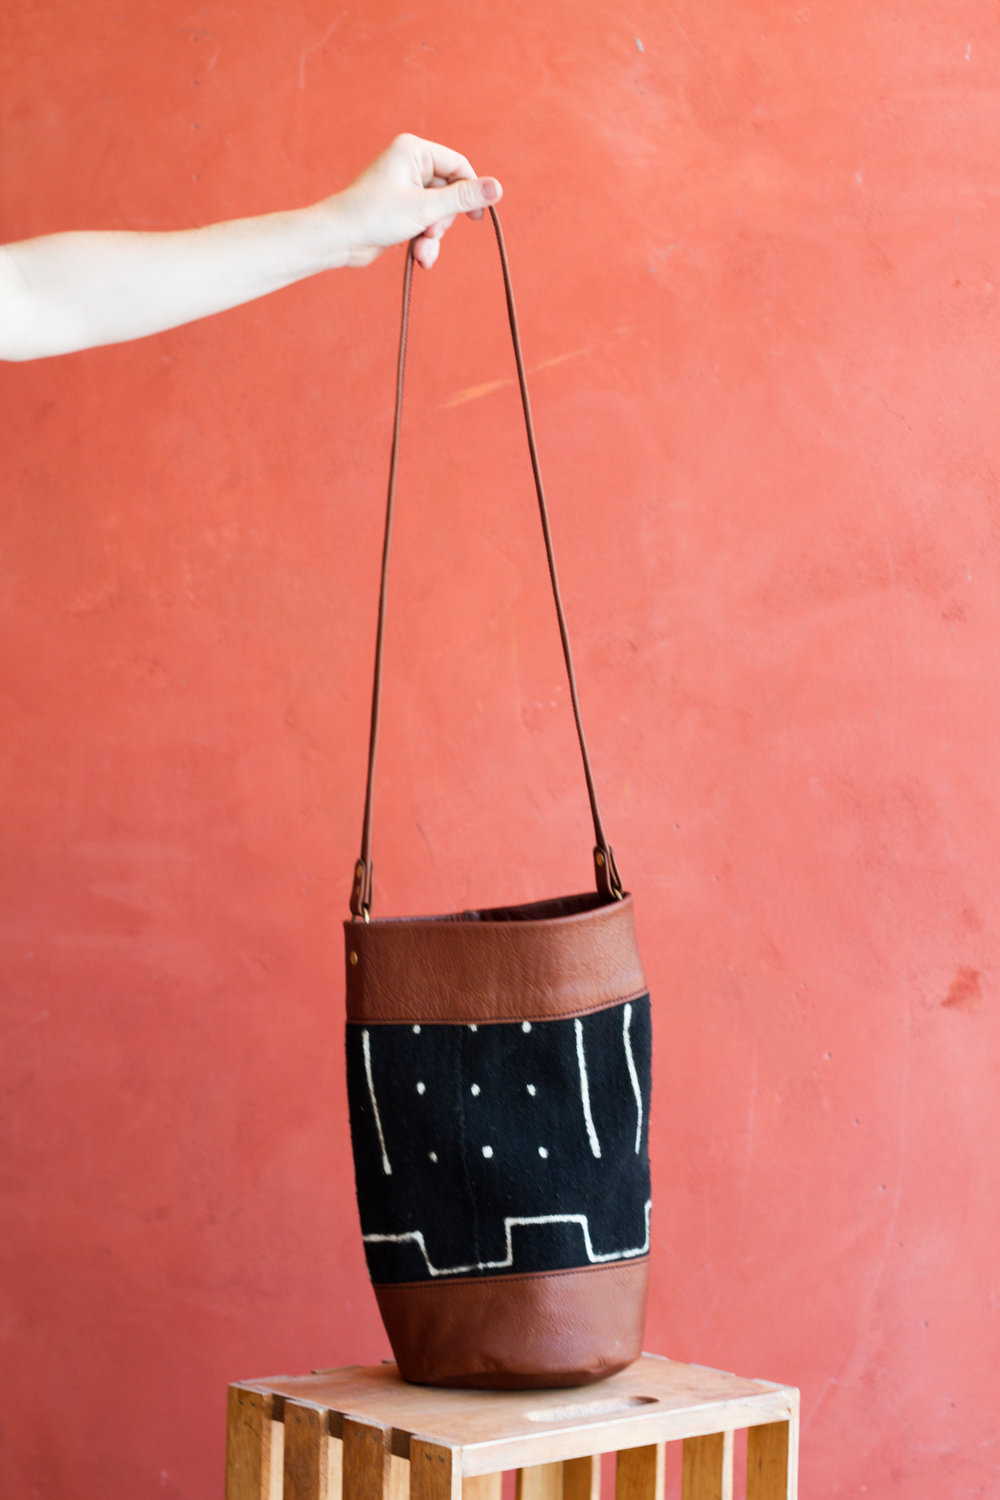 The Mali Bucket Bag - Talk about Christi and Here sister Anna and their ministry in India with Gospel Project International.Talk about the interesting texture of the fabric and how you feel more connected with nature because of the unique nature of the fabric.